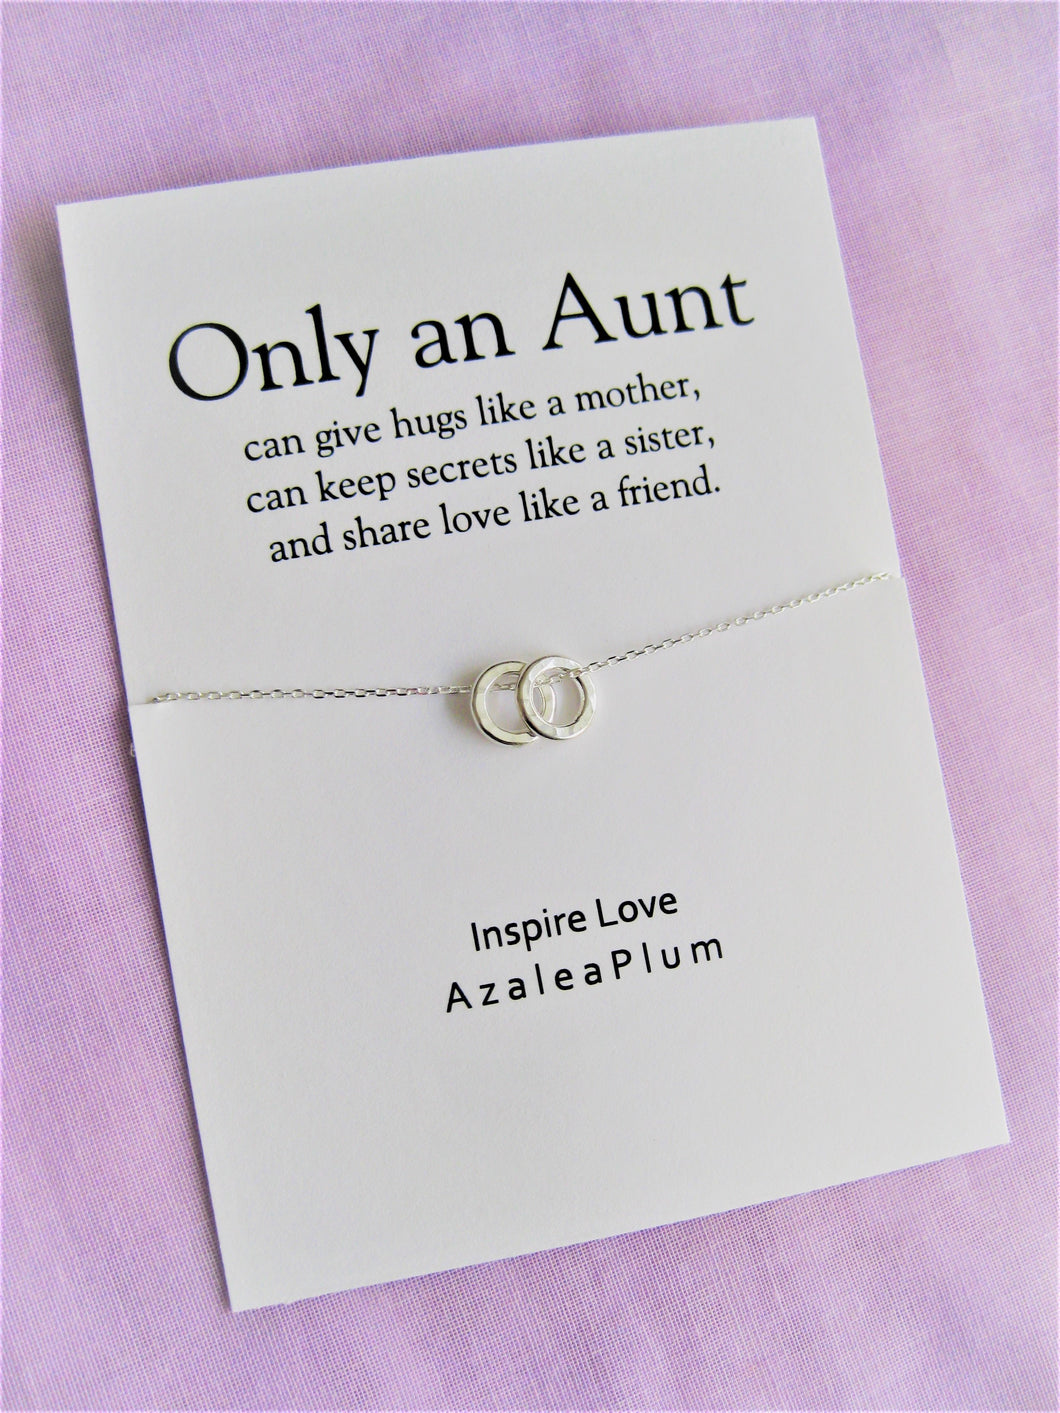 Aunt-Niece Necklace: Aunt-Niece Gift, Aunt-Niece Jewelry, Aunt-Niece Quotes, Aunt Necklace, 2 Solid Sterling Silver Circles